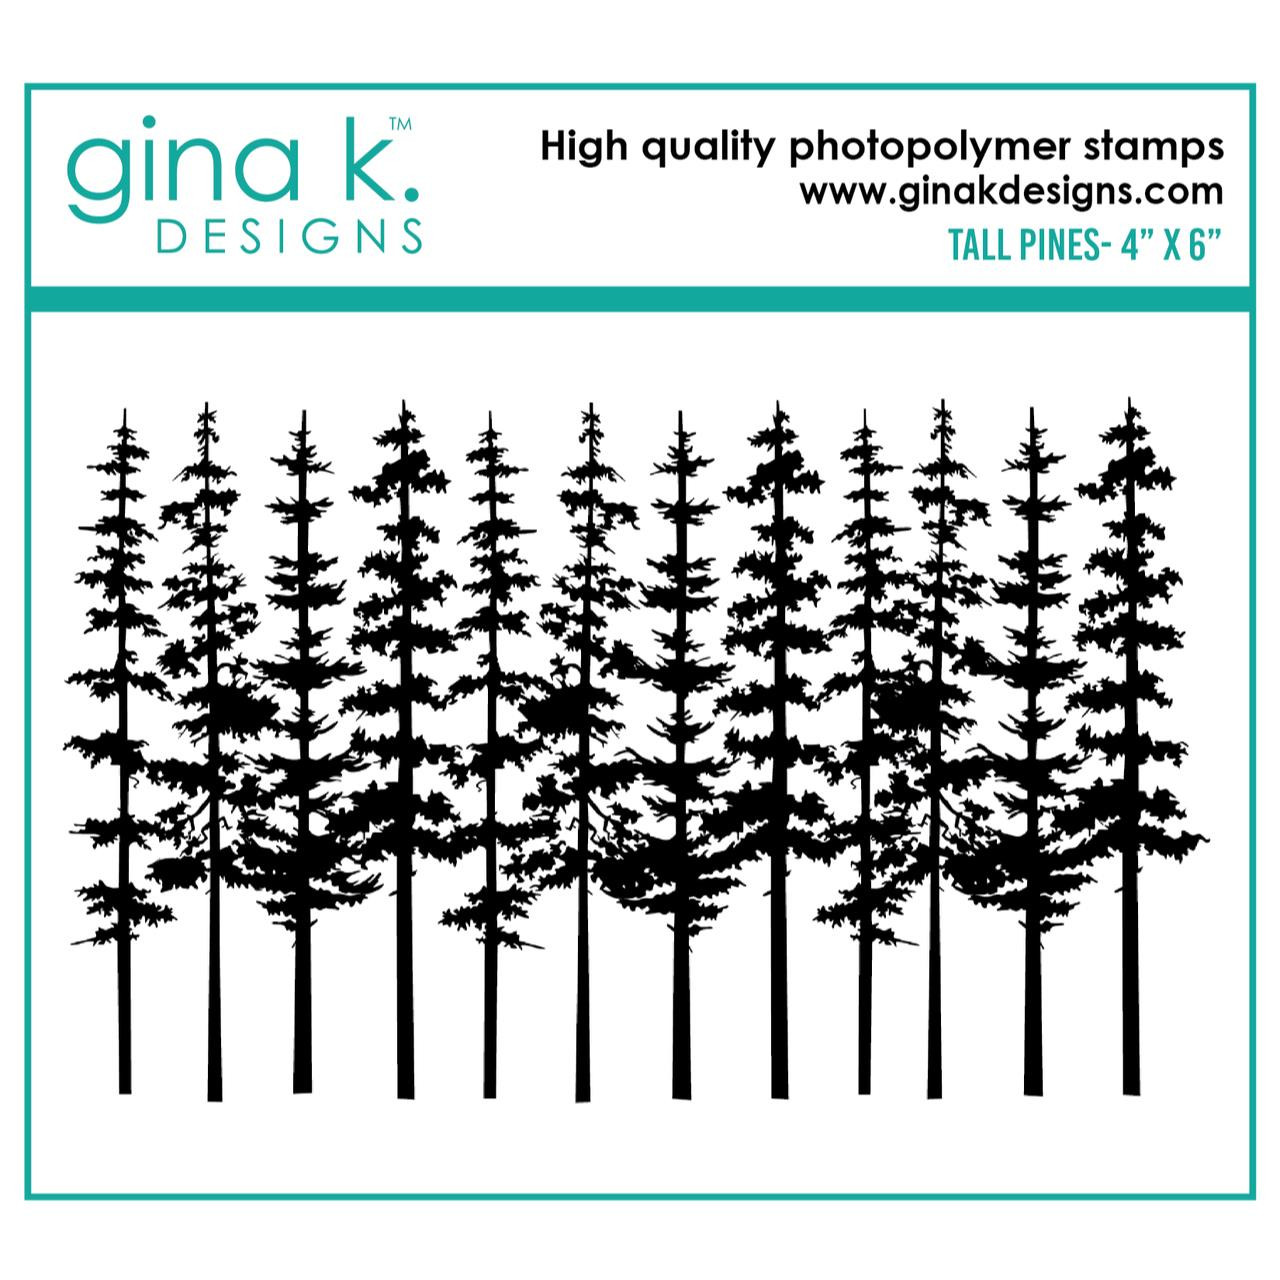 Tall Pines, Gina K Designs Clear Stamps - 609015540510